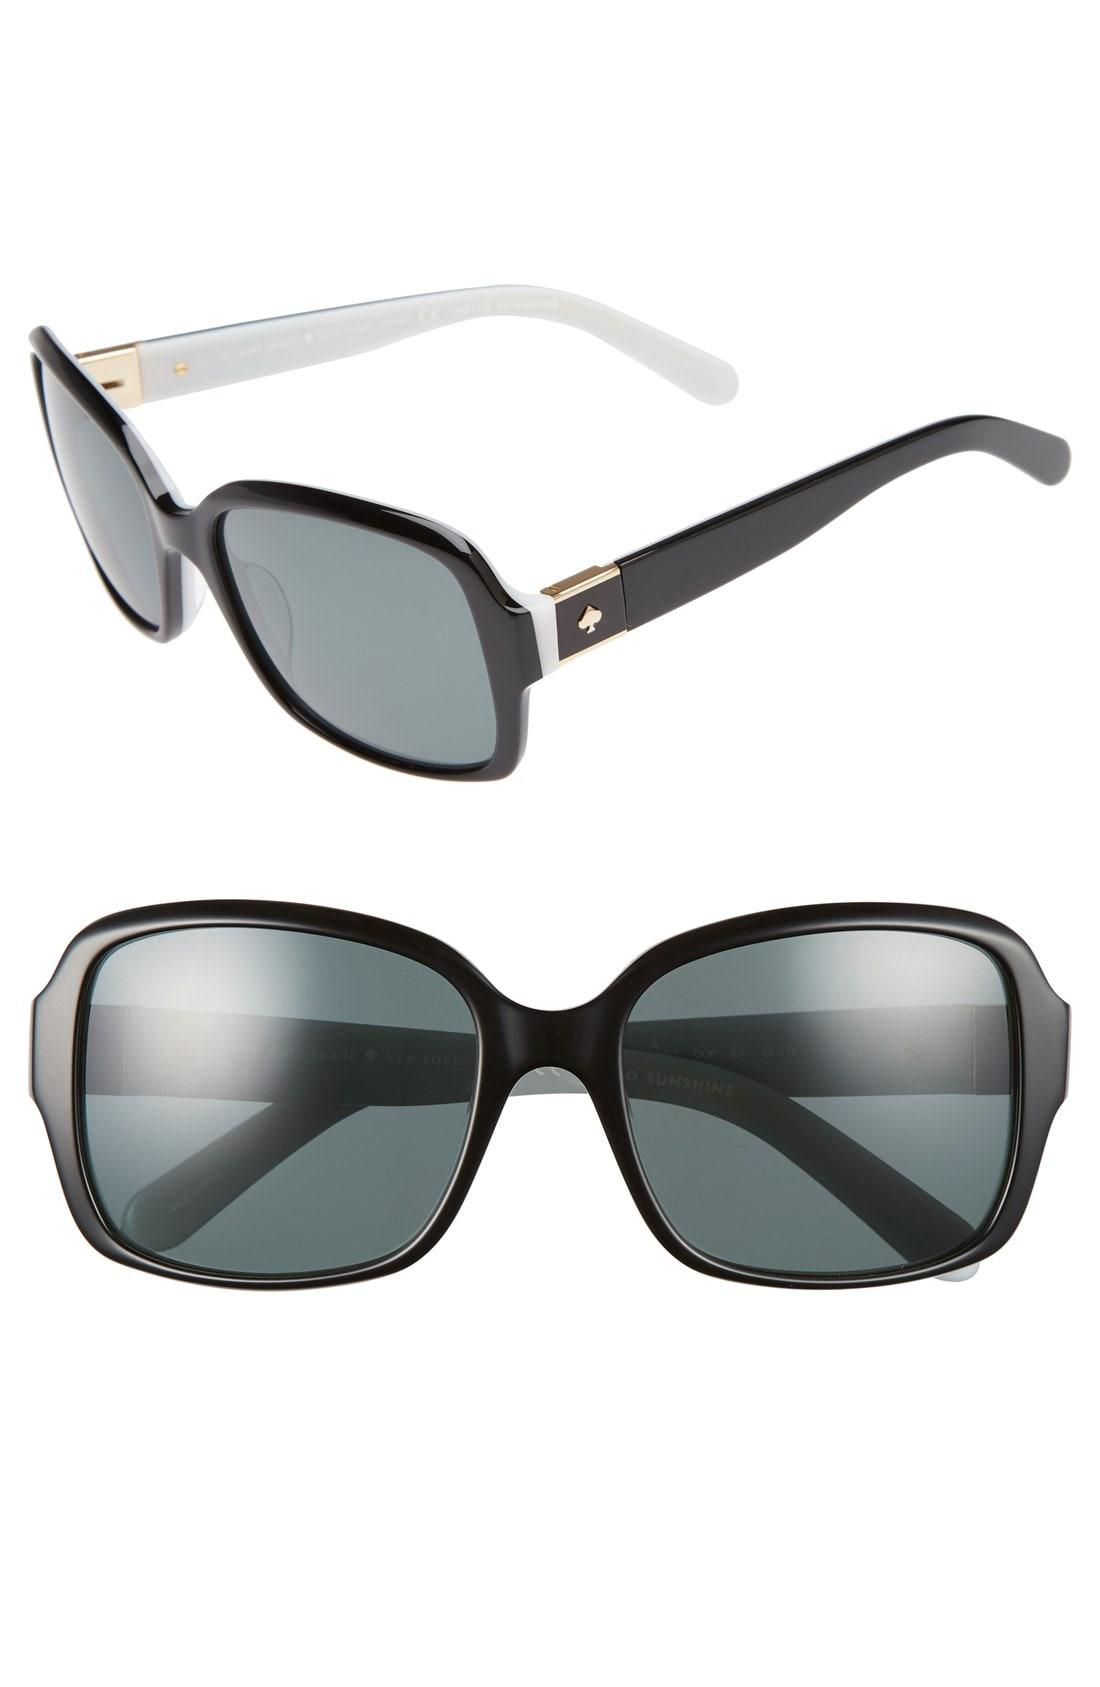 515dd974849 Kate Spade. Women s Annor 54mm Polarized Sunglasses -